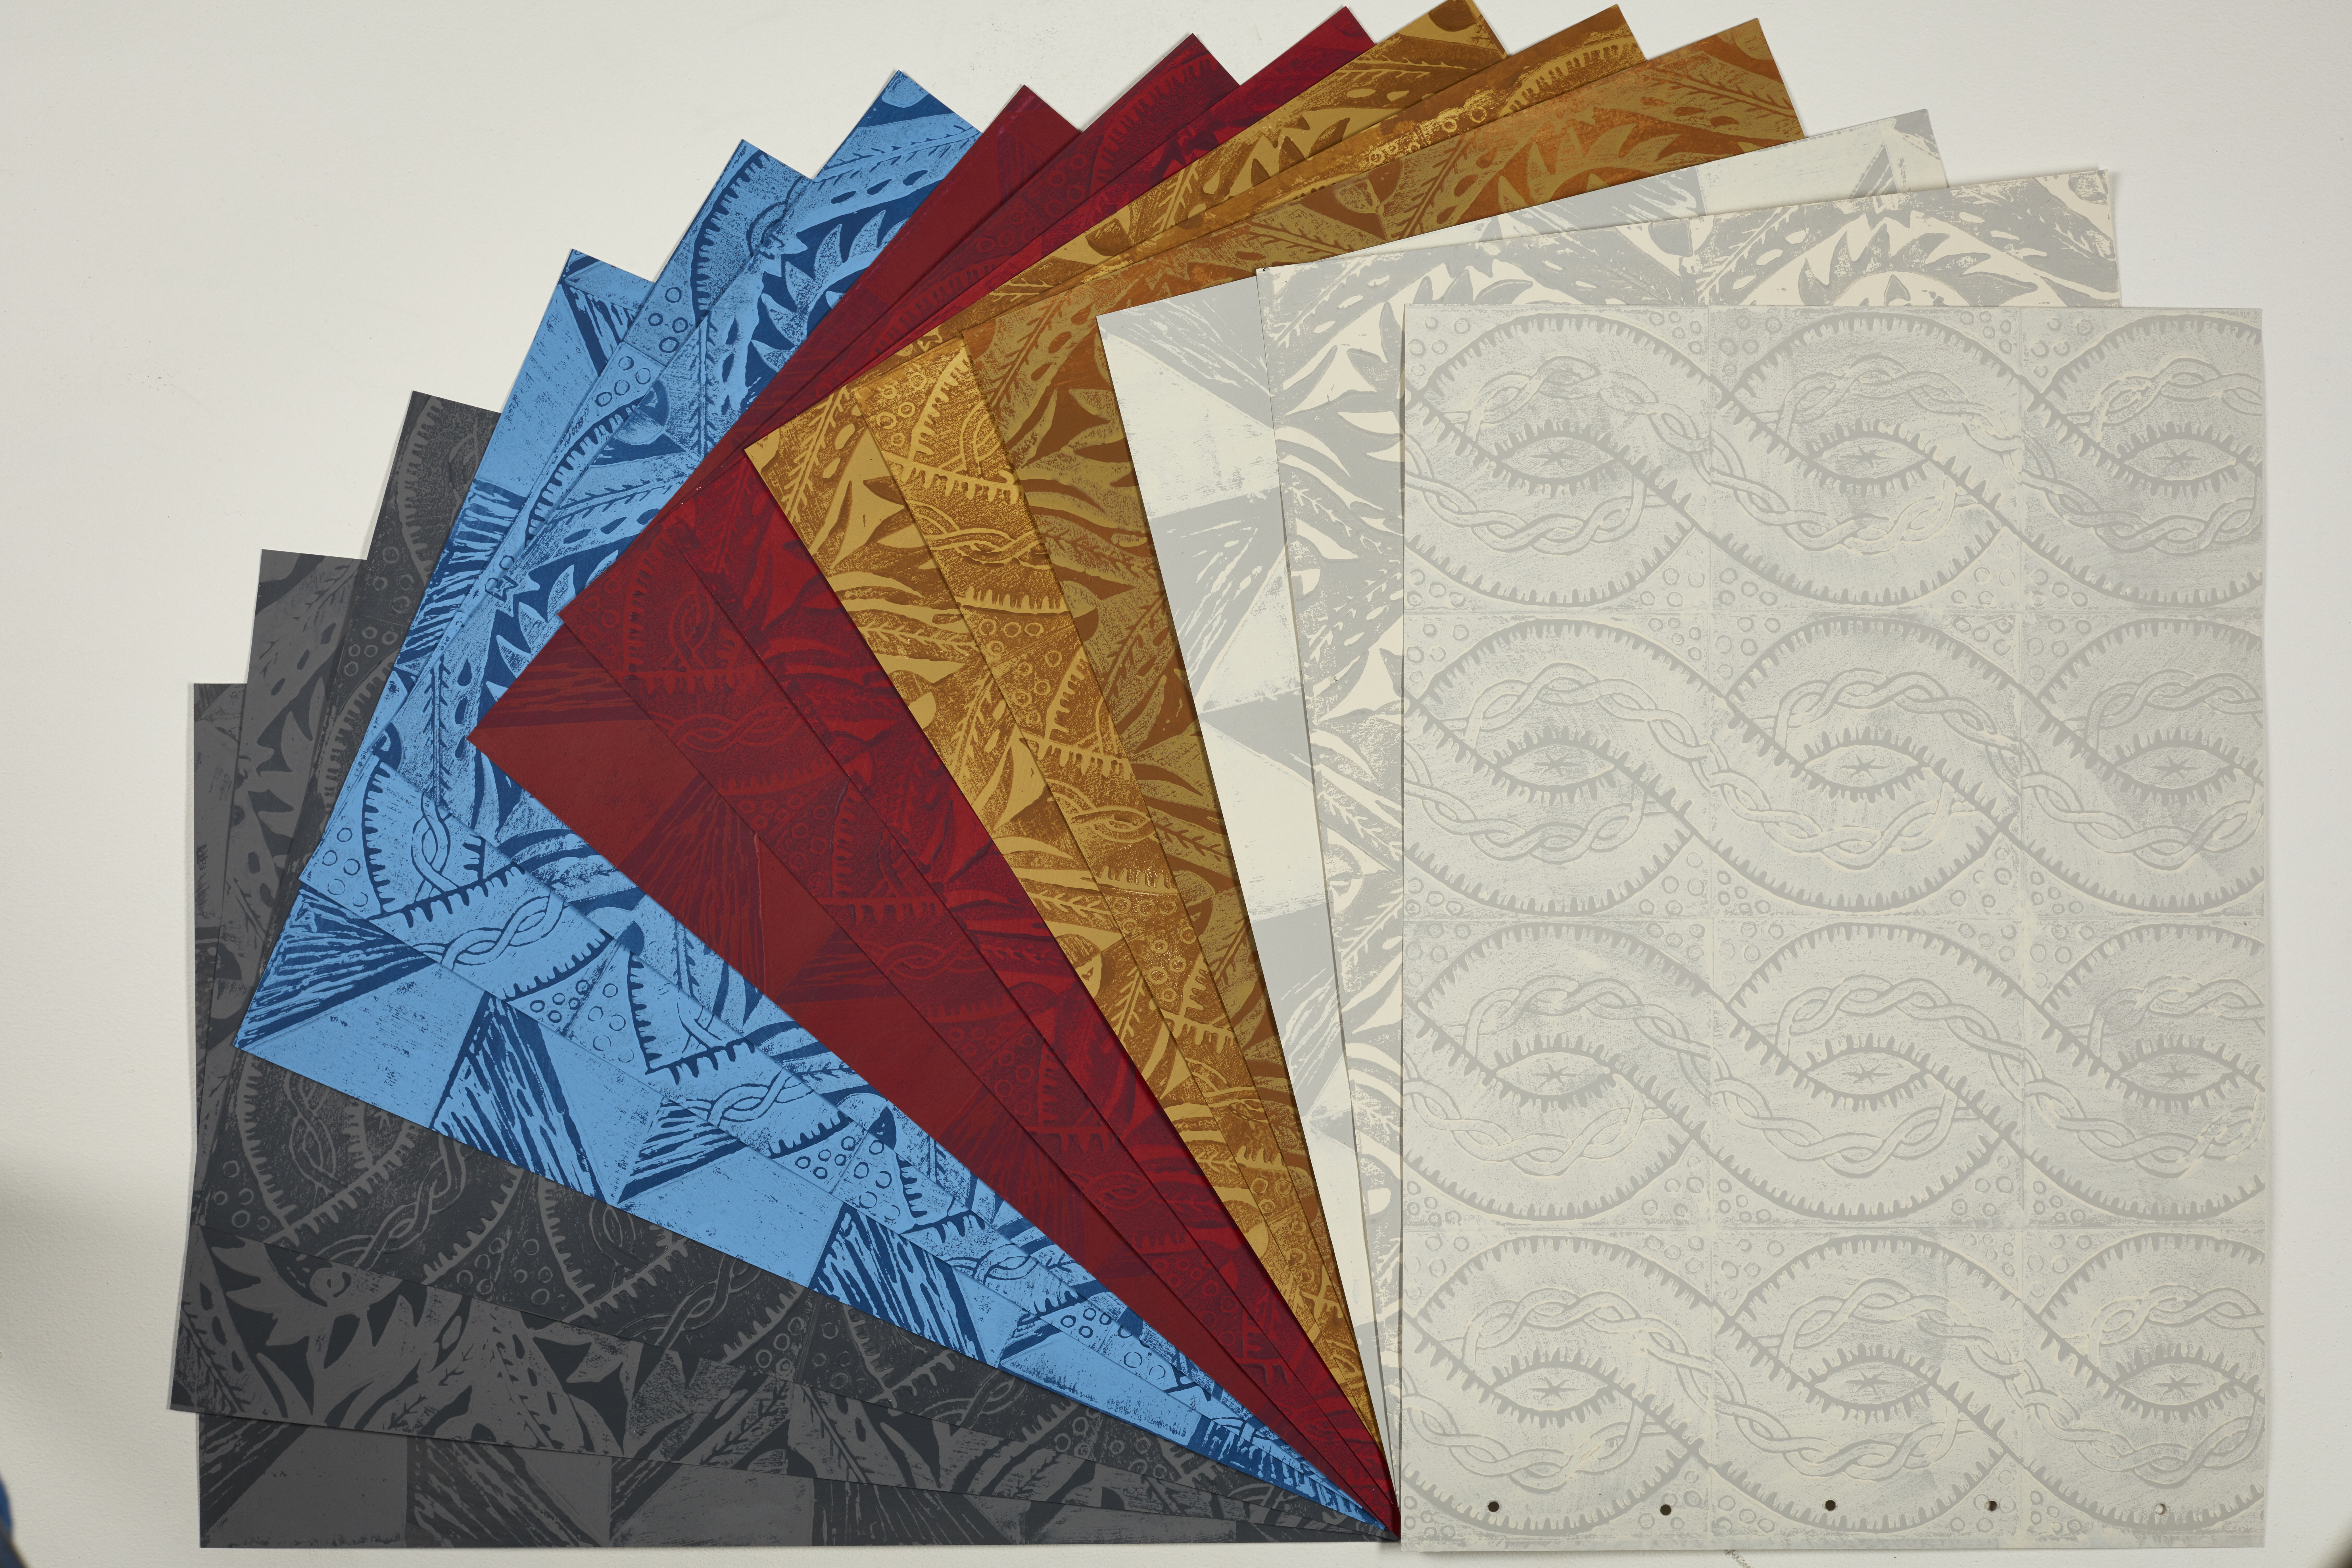 The new limited edition collection of wallpaper and wallpaper prints based on Peggy Angus designs at The New Craftsmen